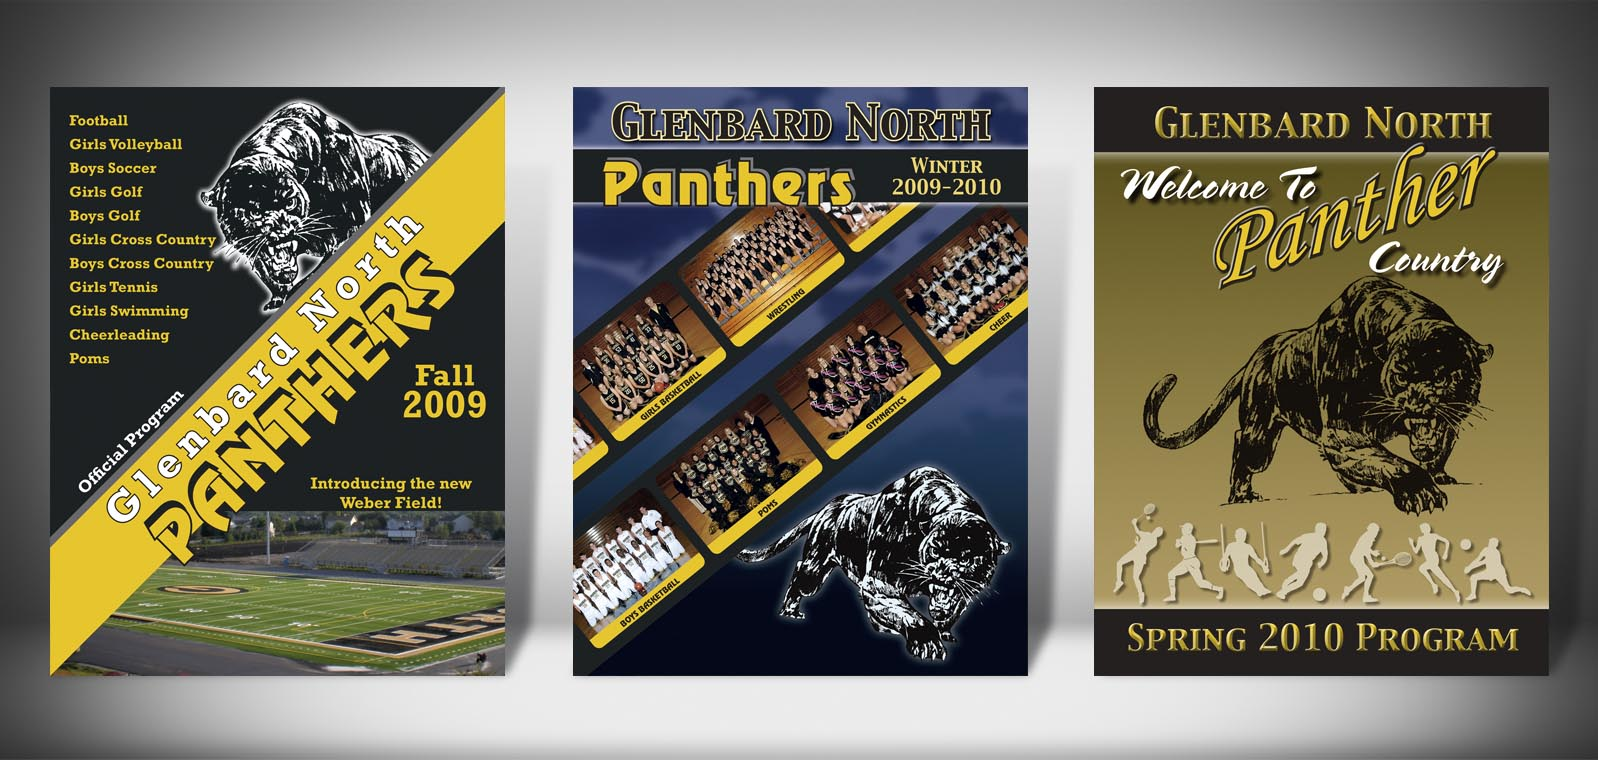 The Front Covers for the 2009-2010 Glenbard North High School Sports Program Graphic Design by Roselle Graphic Designer Controlled Color, Inc.